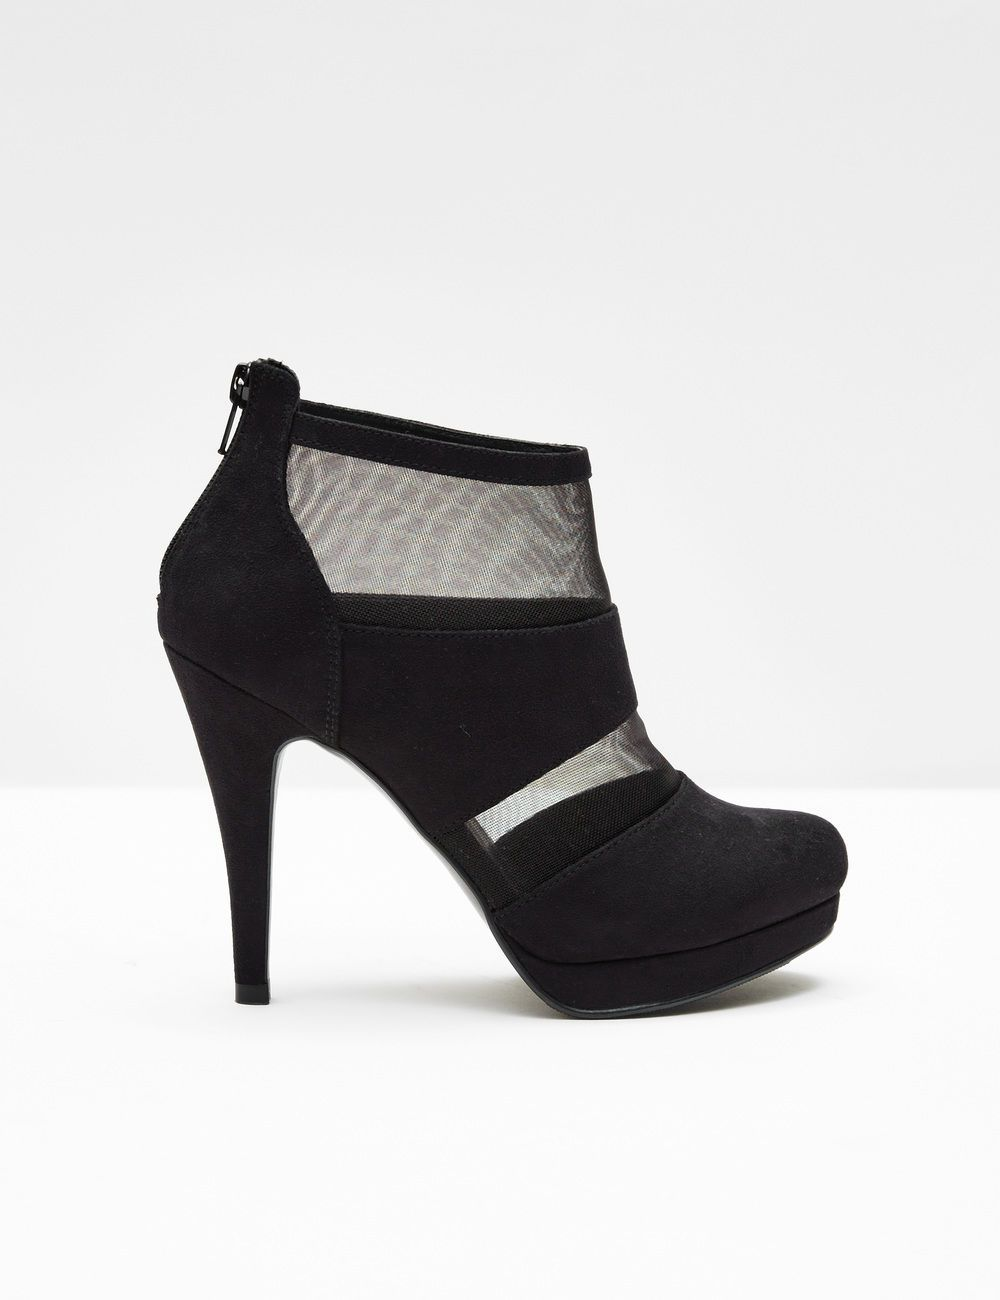 2e620d122262 Pin by Veronica Cisneros on shoes in 2019